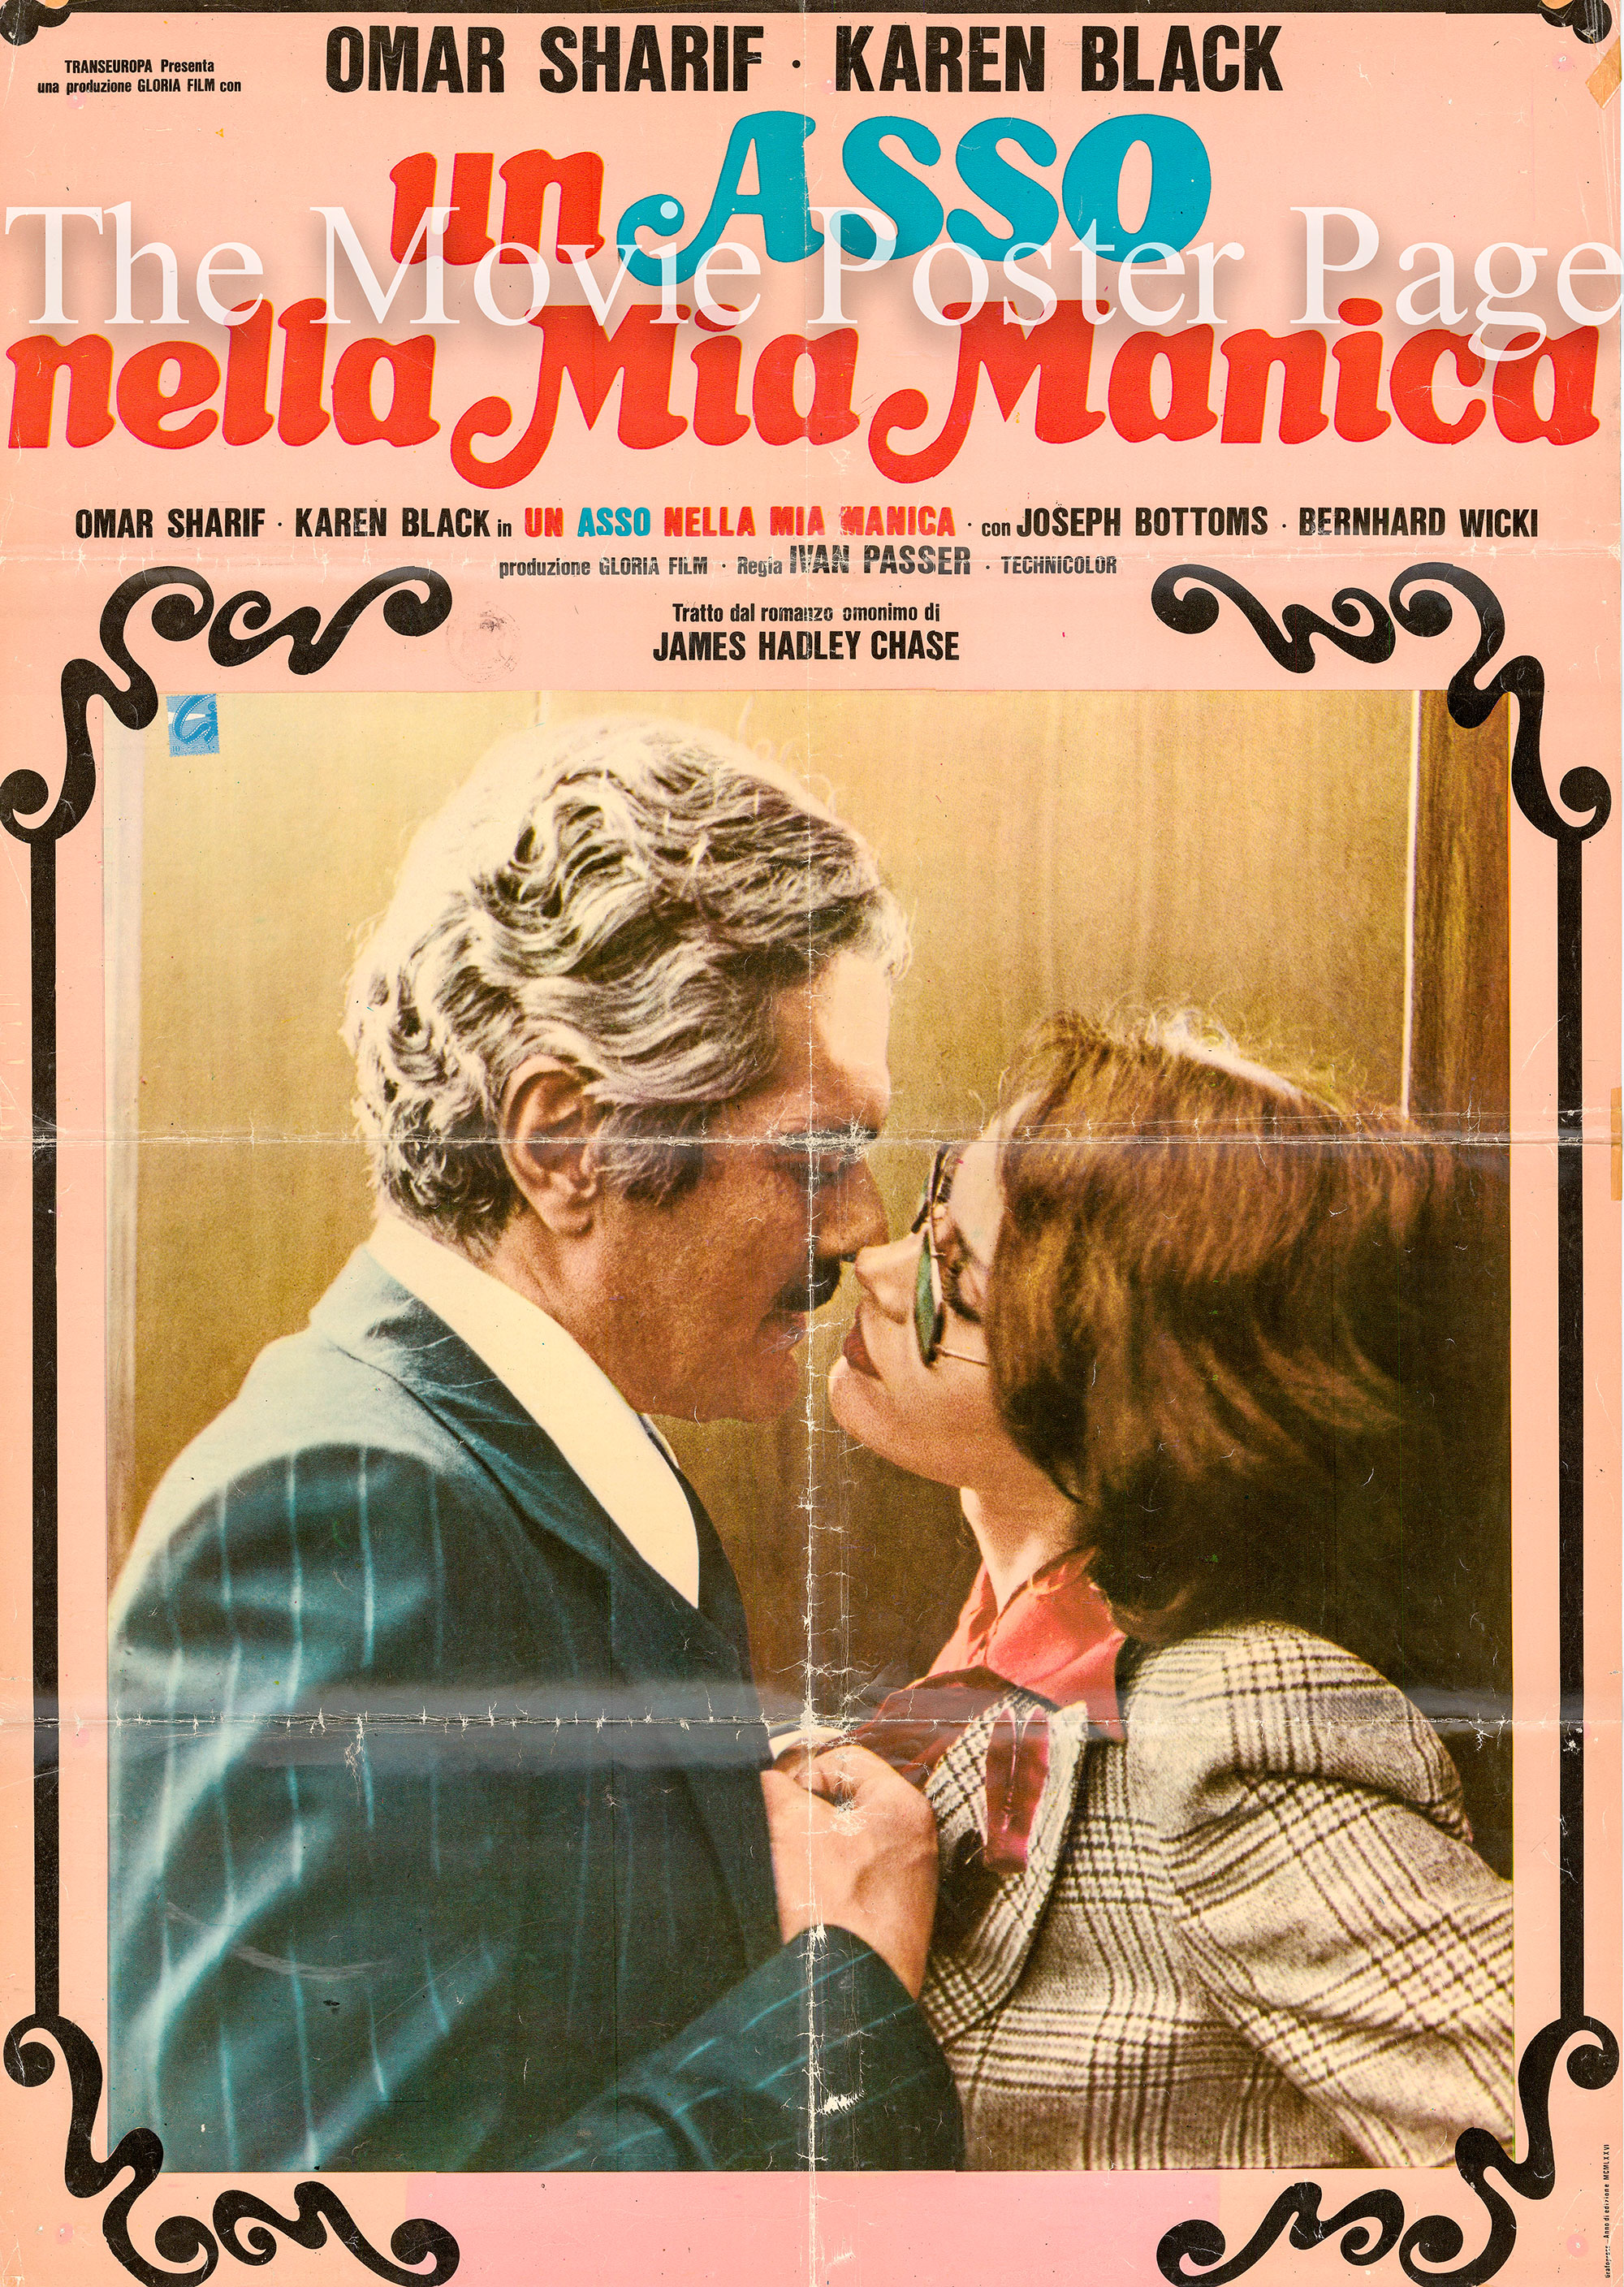 Pictured is an Italian photobusta promotional poster for the 1976 Ivan Passer film Crime and Passion, starring Omar Sharif and Karen Black.